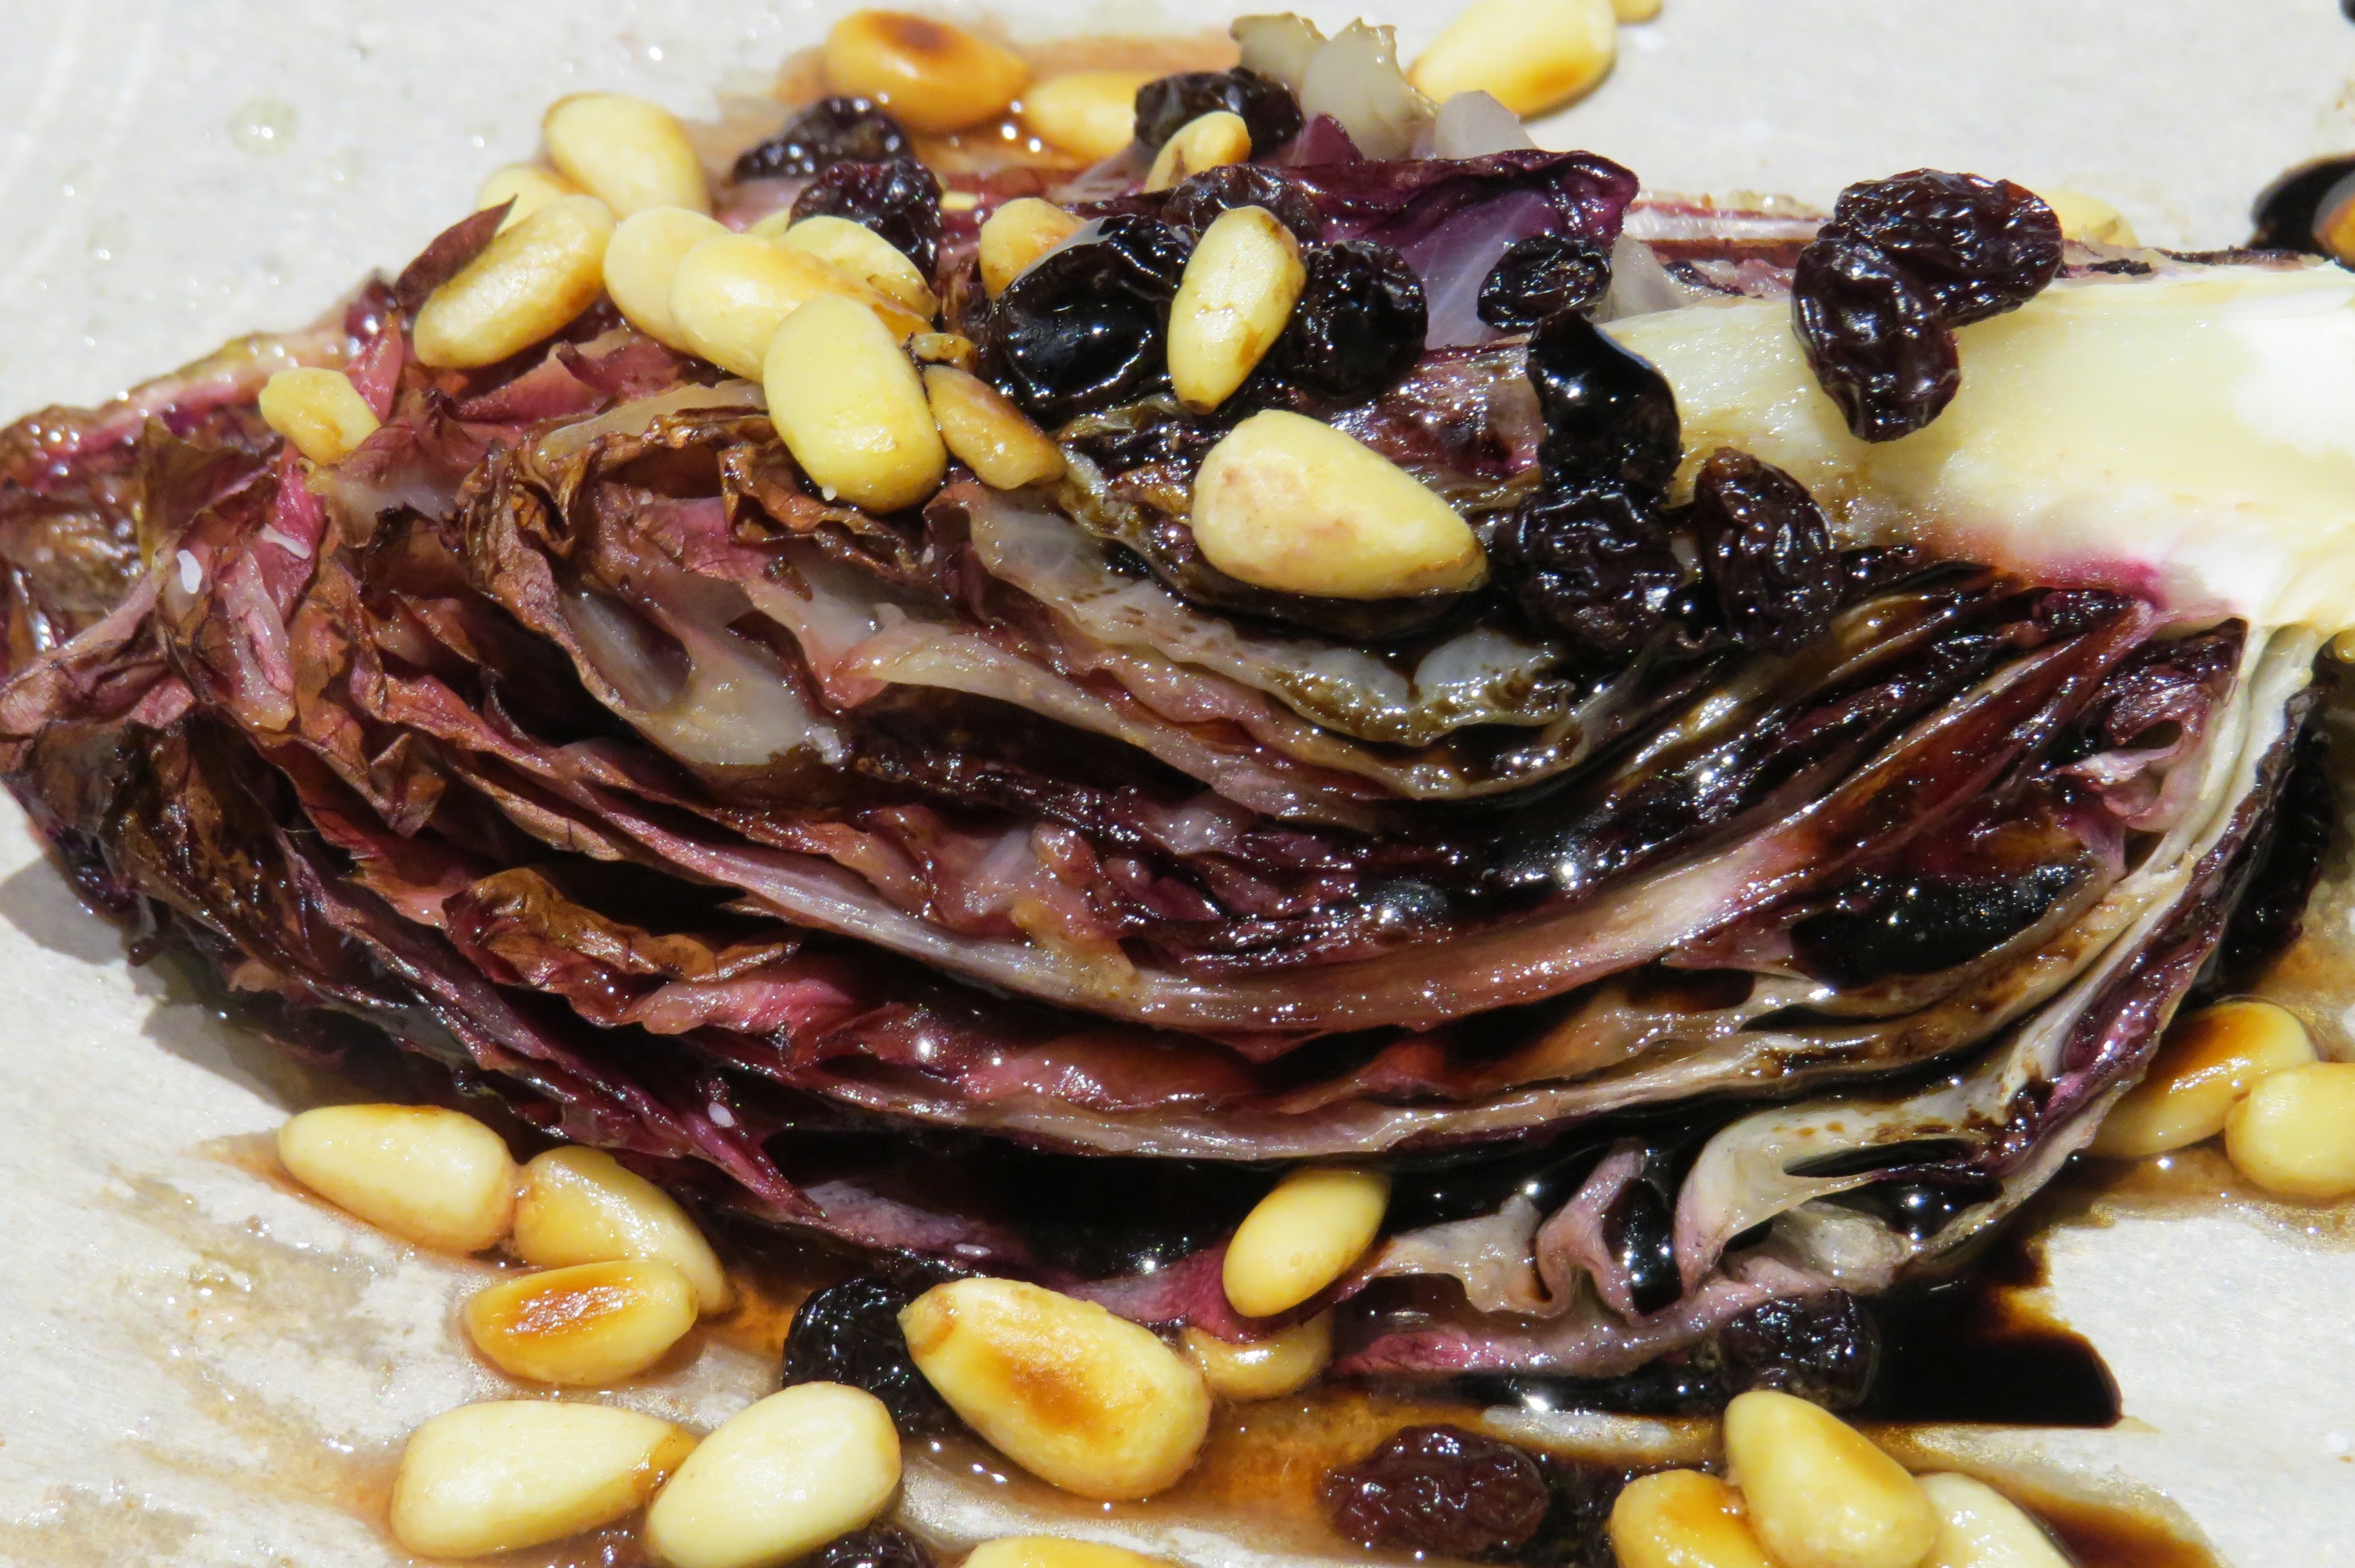 RADICCHIO with PINE NUTS, CURRANTS and AGED BALSAMIC